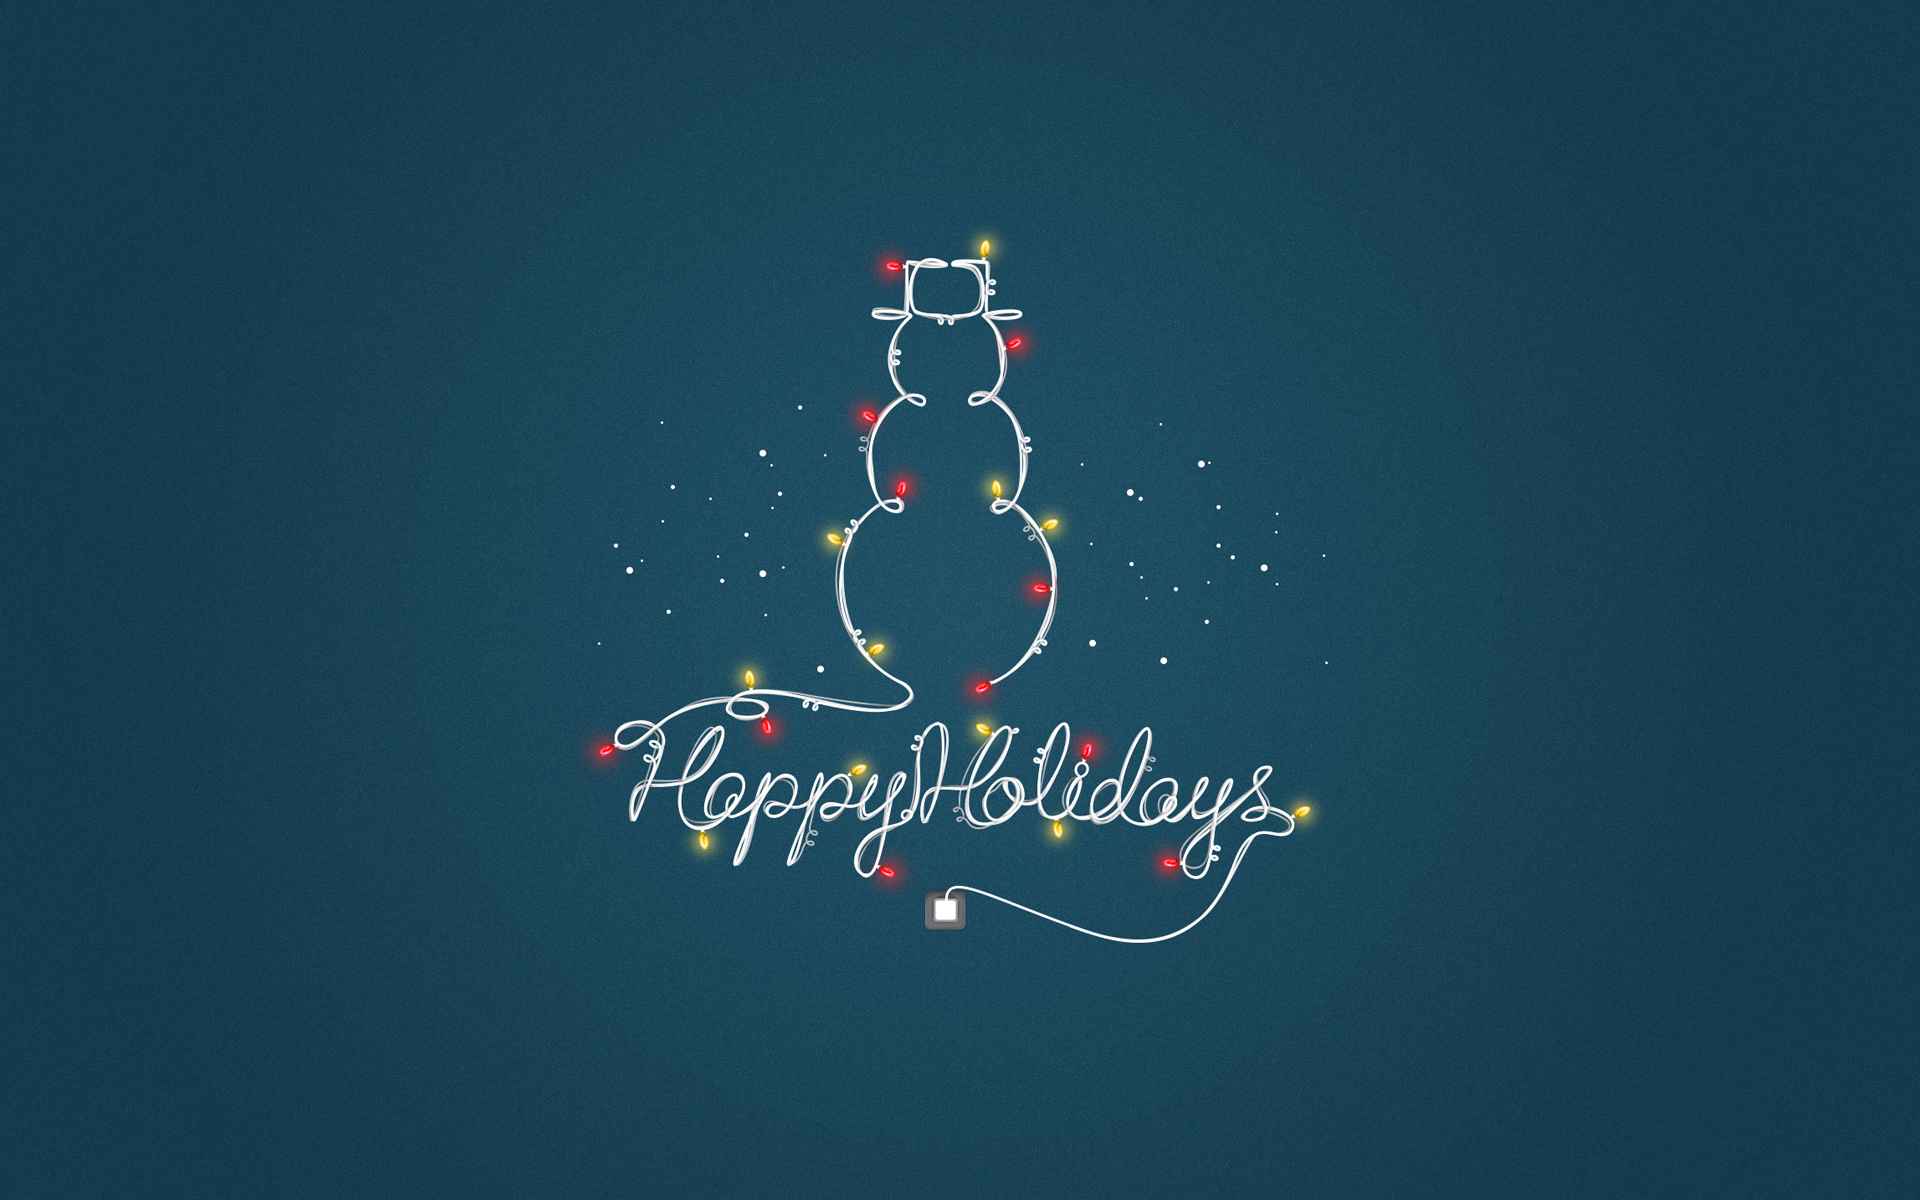 HD Wallpapers Happy 2013 Holidays